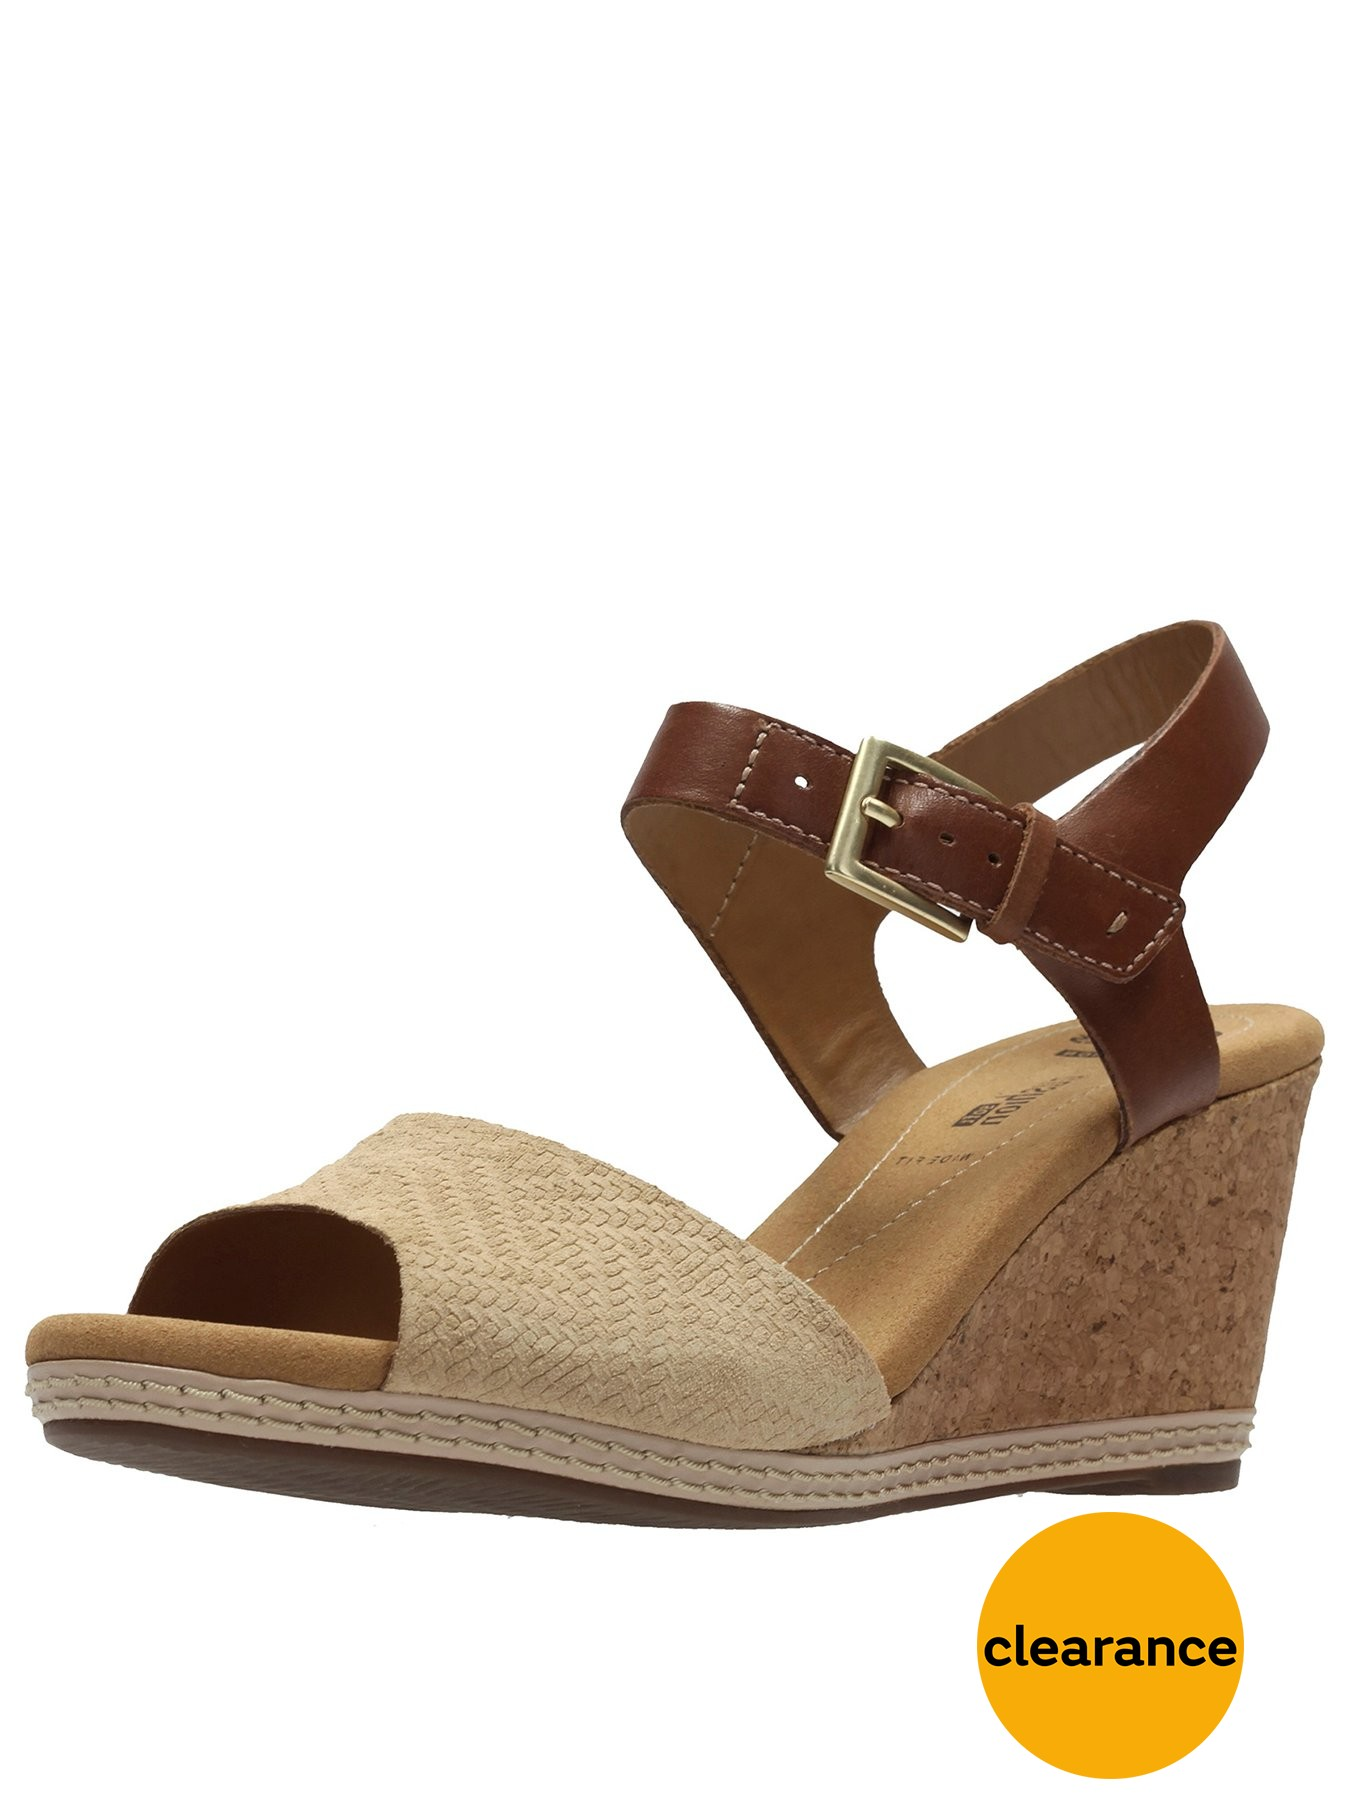 Cheap Clarks Helio Jet4 Wide Fit Wedge Nude Sandals for Women On Sale